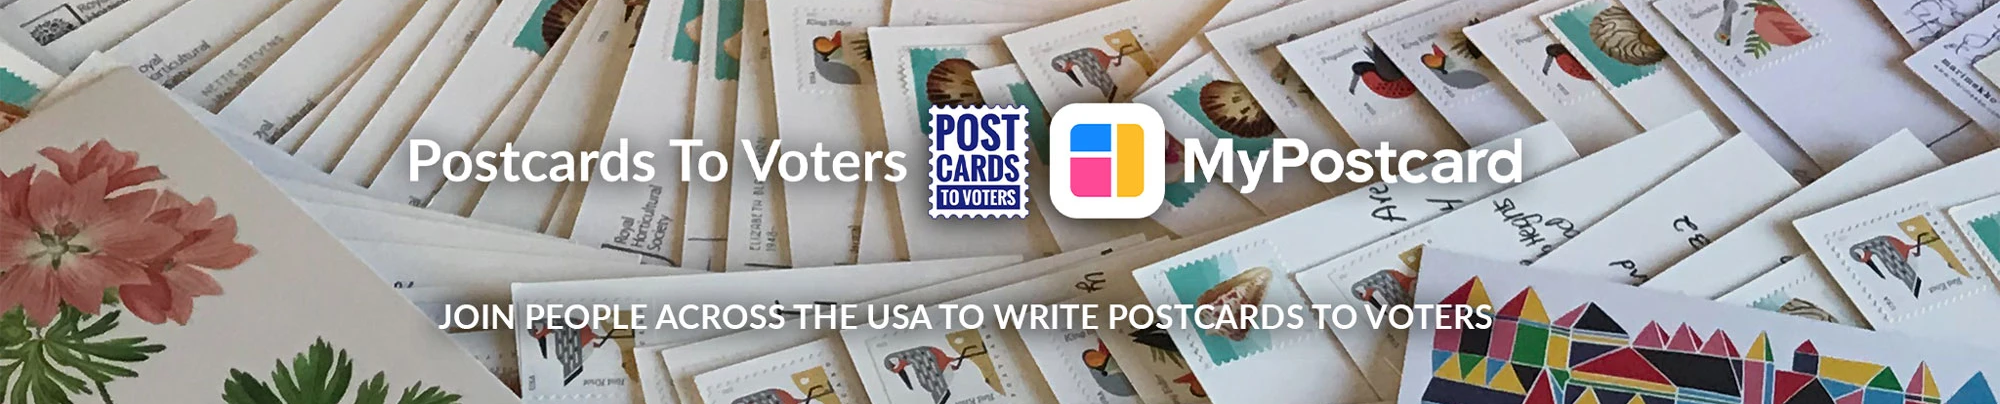 Postcards to Voters & MyPostcard